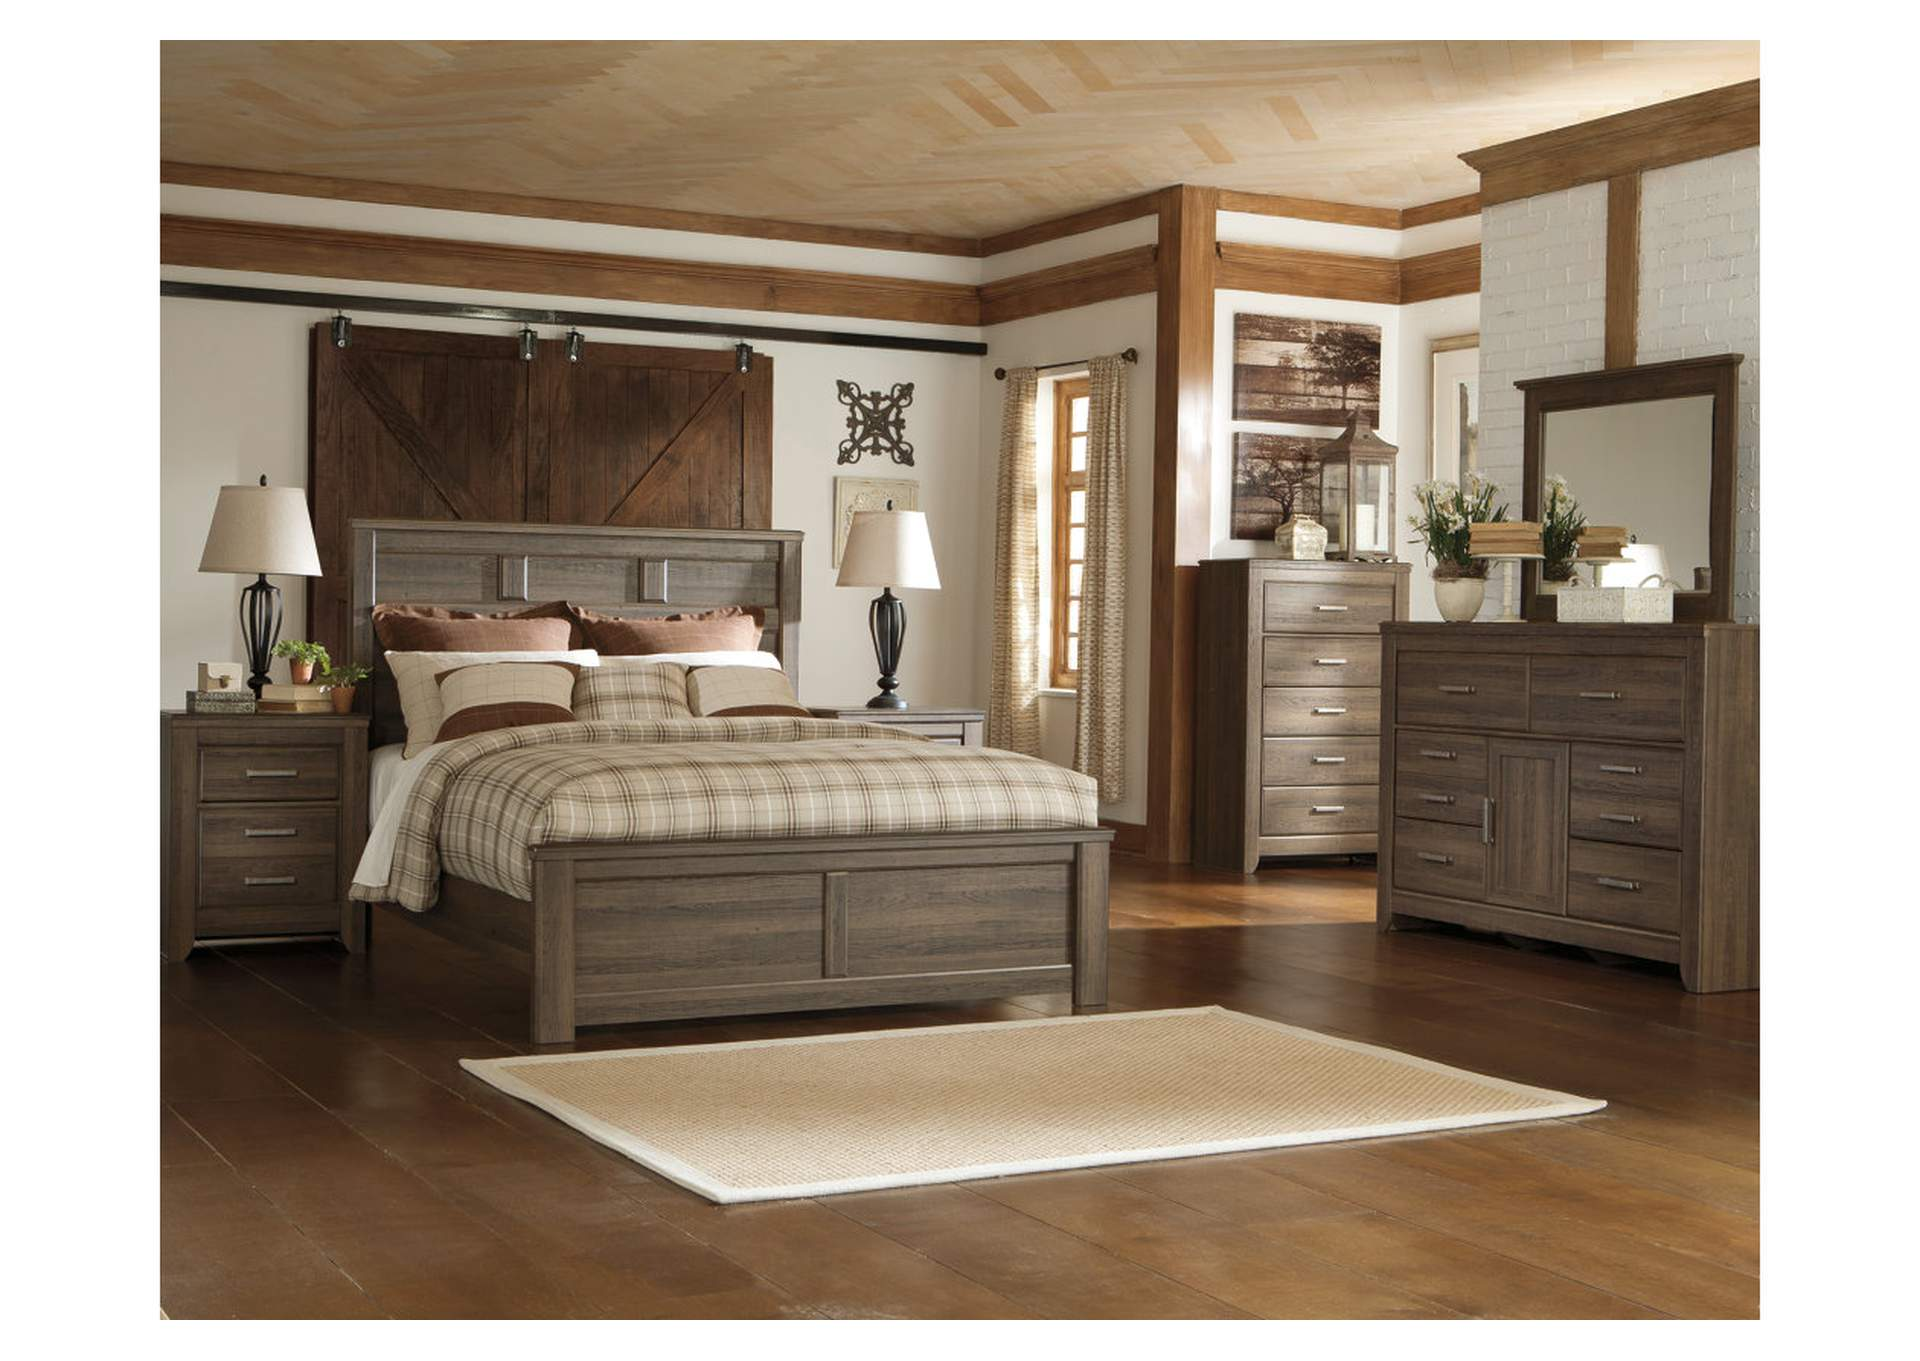 Juararo King Panel Bed w/Dresser, Mirror, Drawer Chest & Nightstand,Signature Design By Ashley